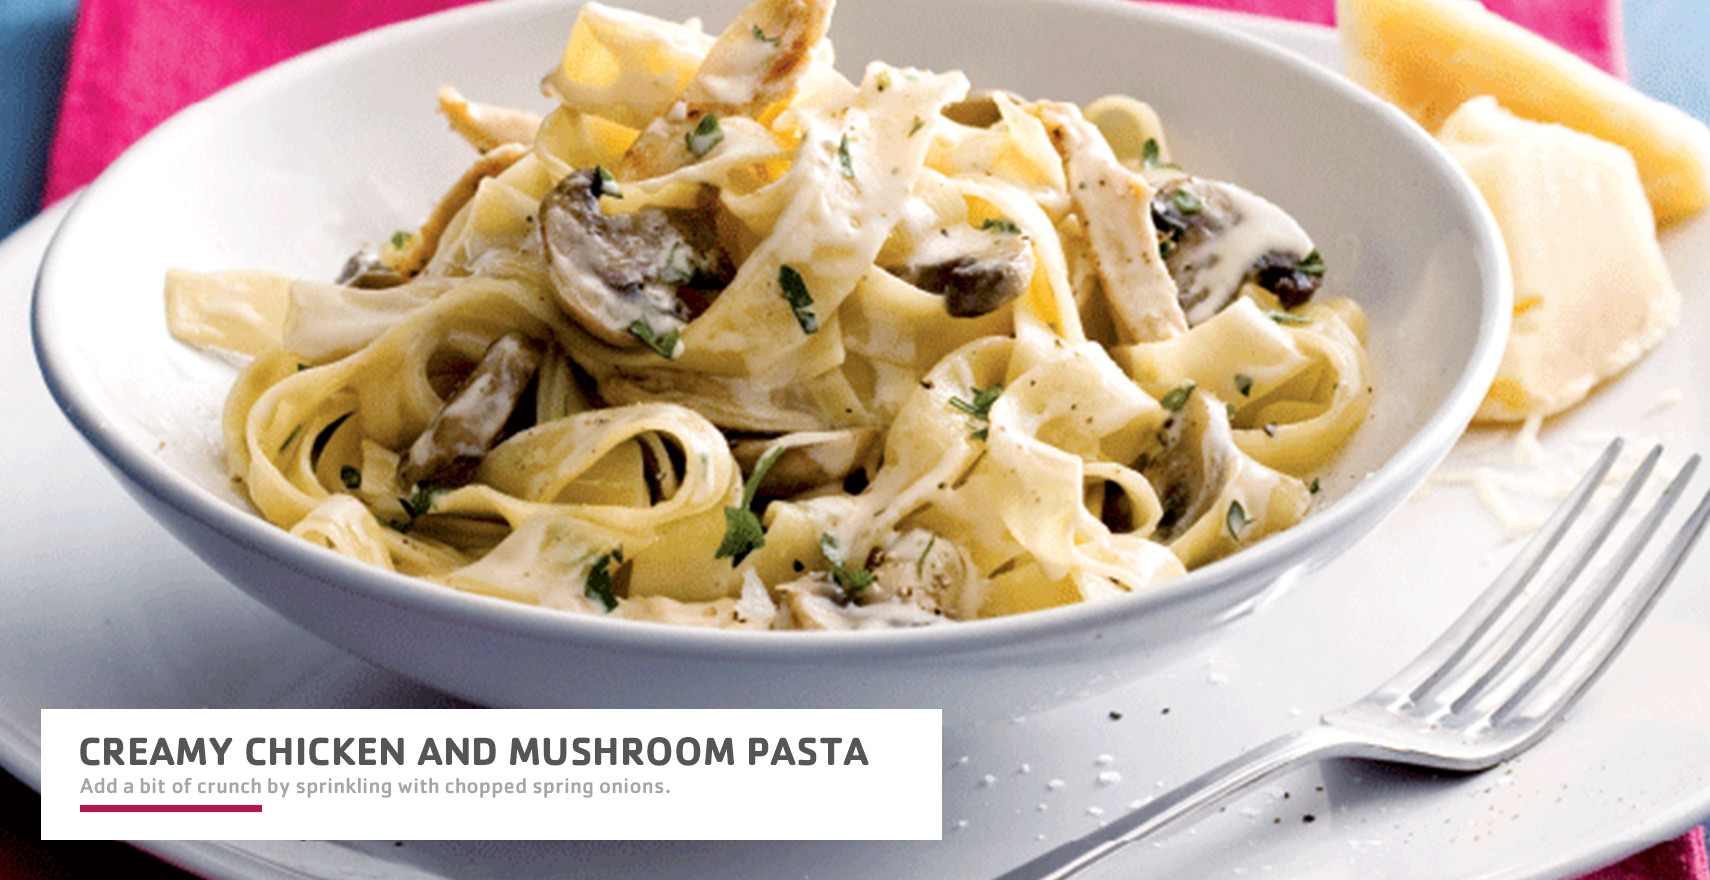 Main-Creamy Chicken and Mushroom Pasta.jpg